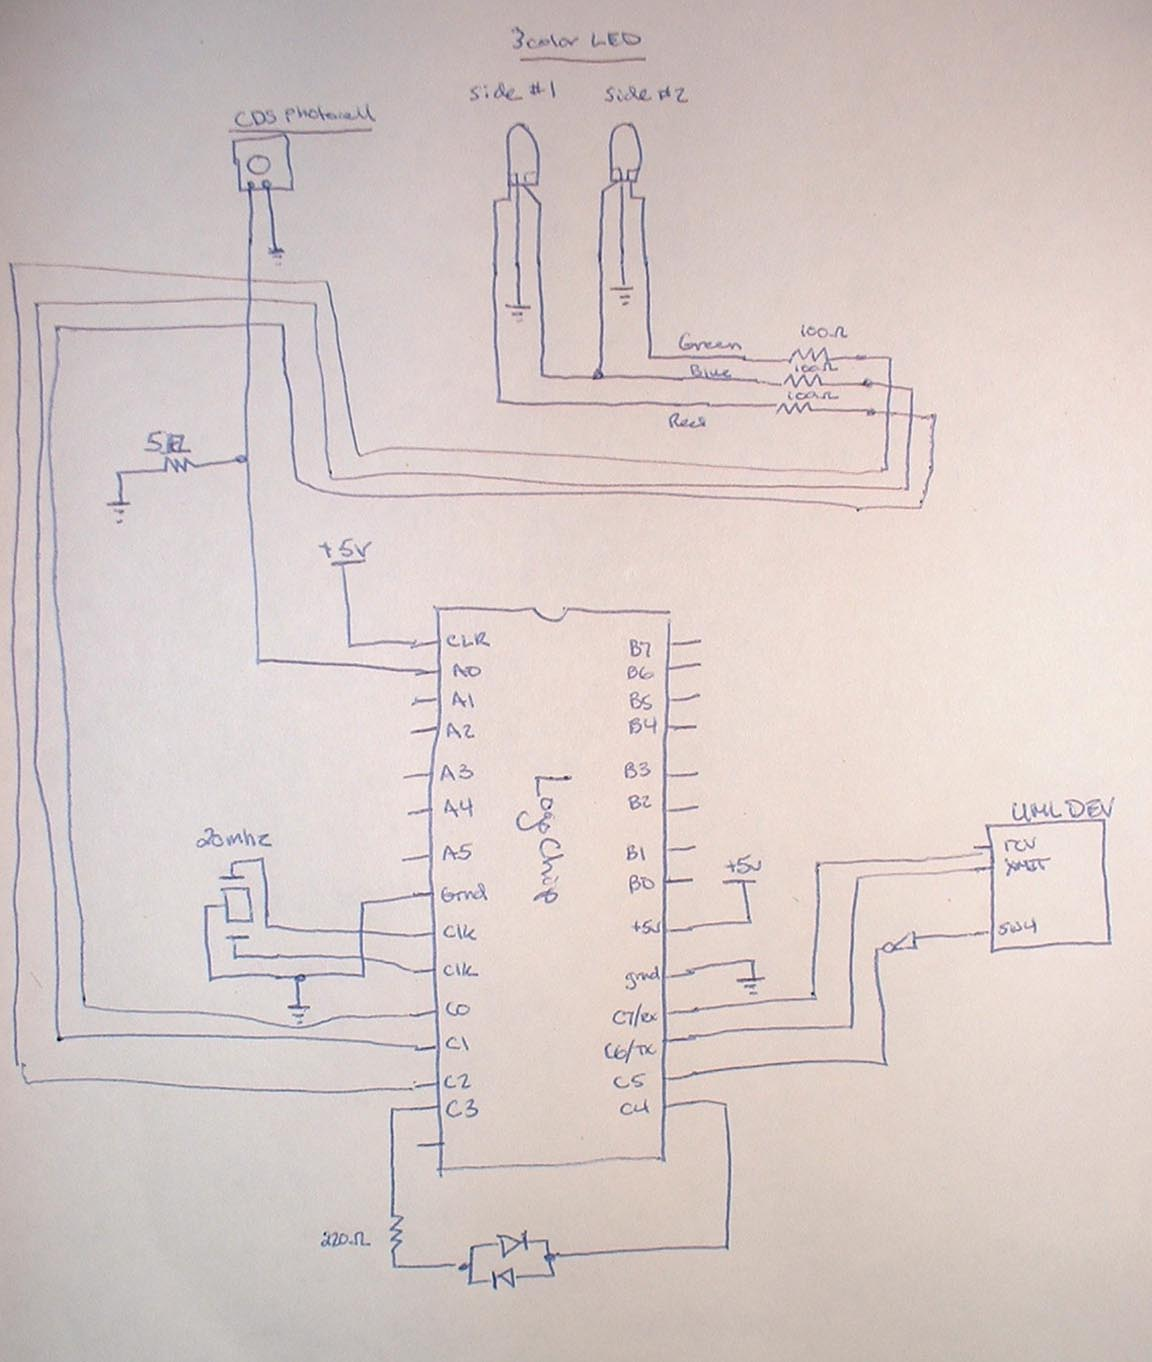 Botfest 2003 Project Writeup Sensor Wiring Diagram Photocell Light Switch Color Schematic Full Screen